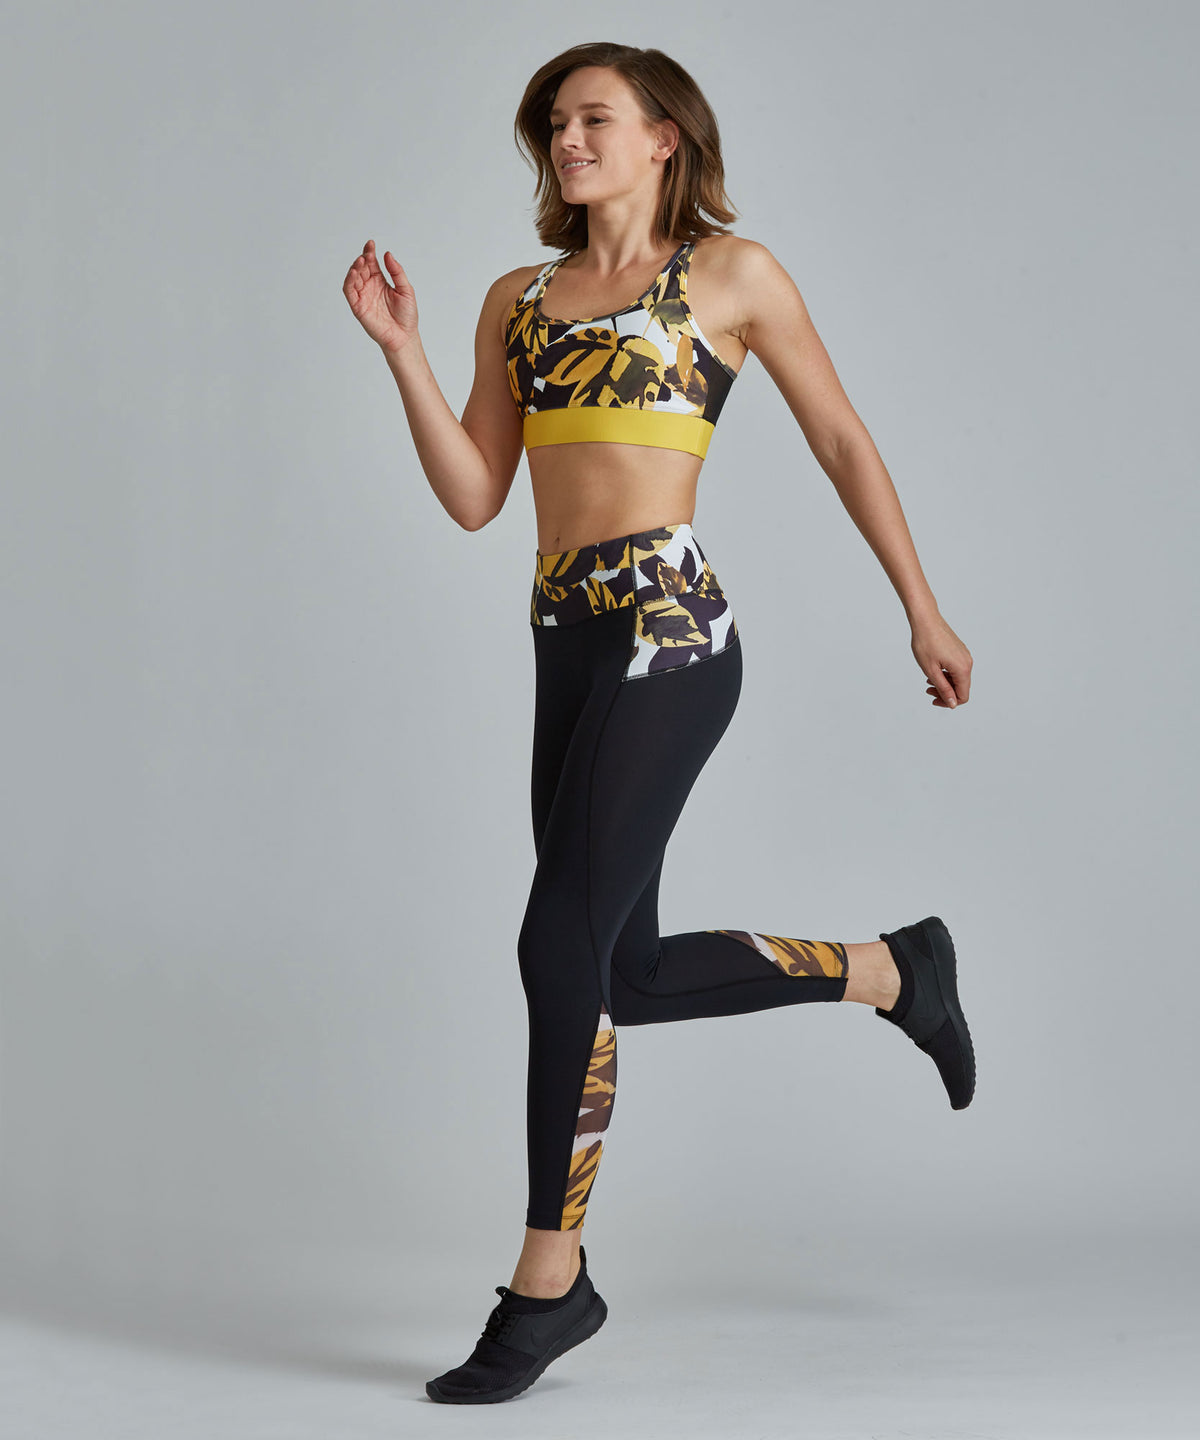 Peace Full-Length Legging - Autumn Leaves Autumn Leaves Peace Full-Length Legging - Women's Yoga Legging by PRISMSPORT